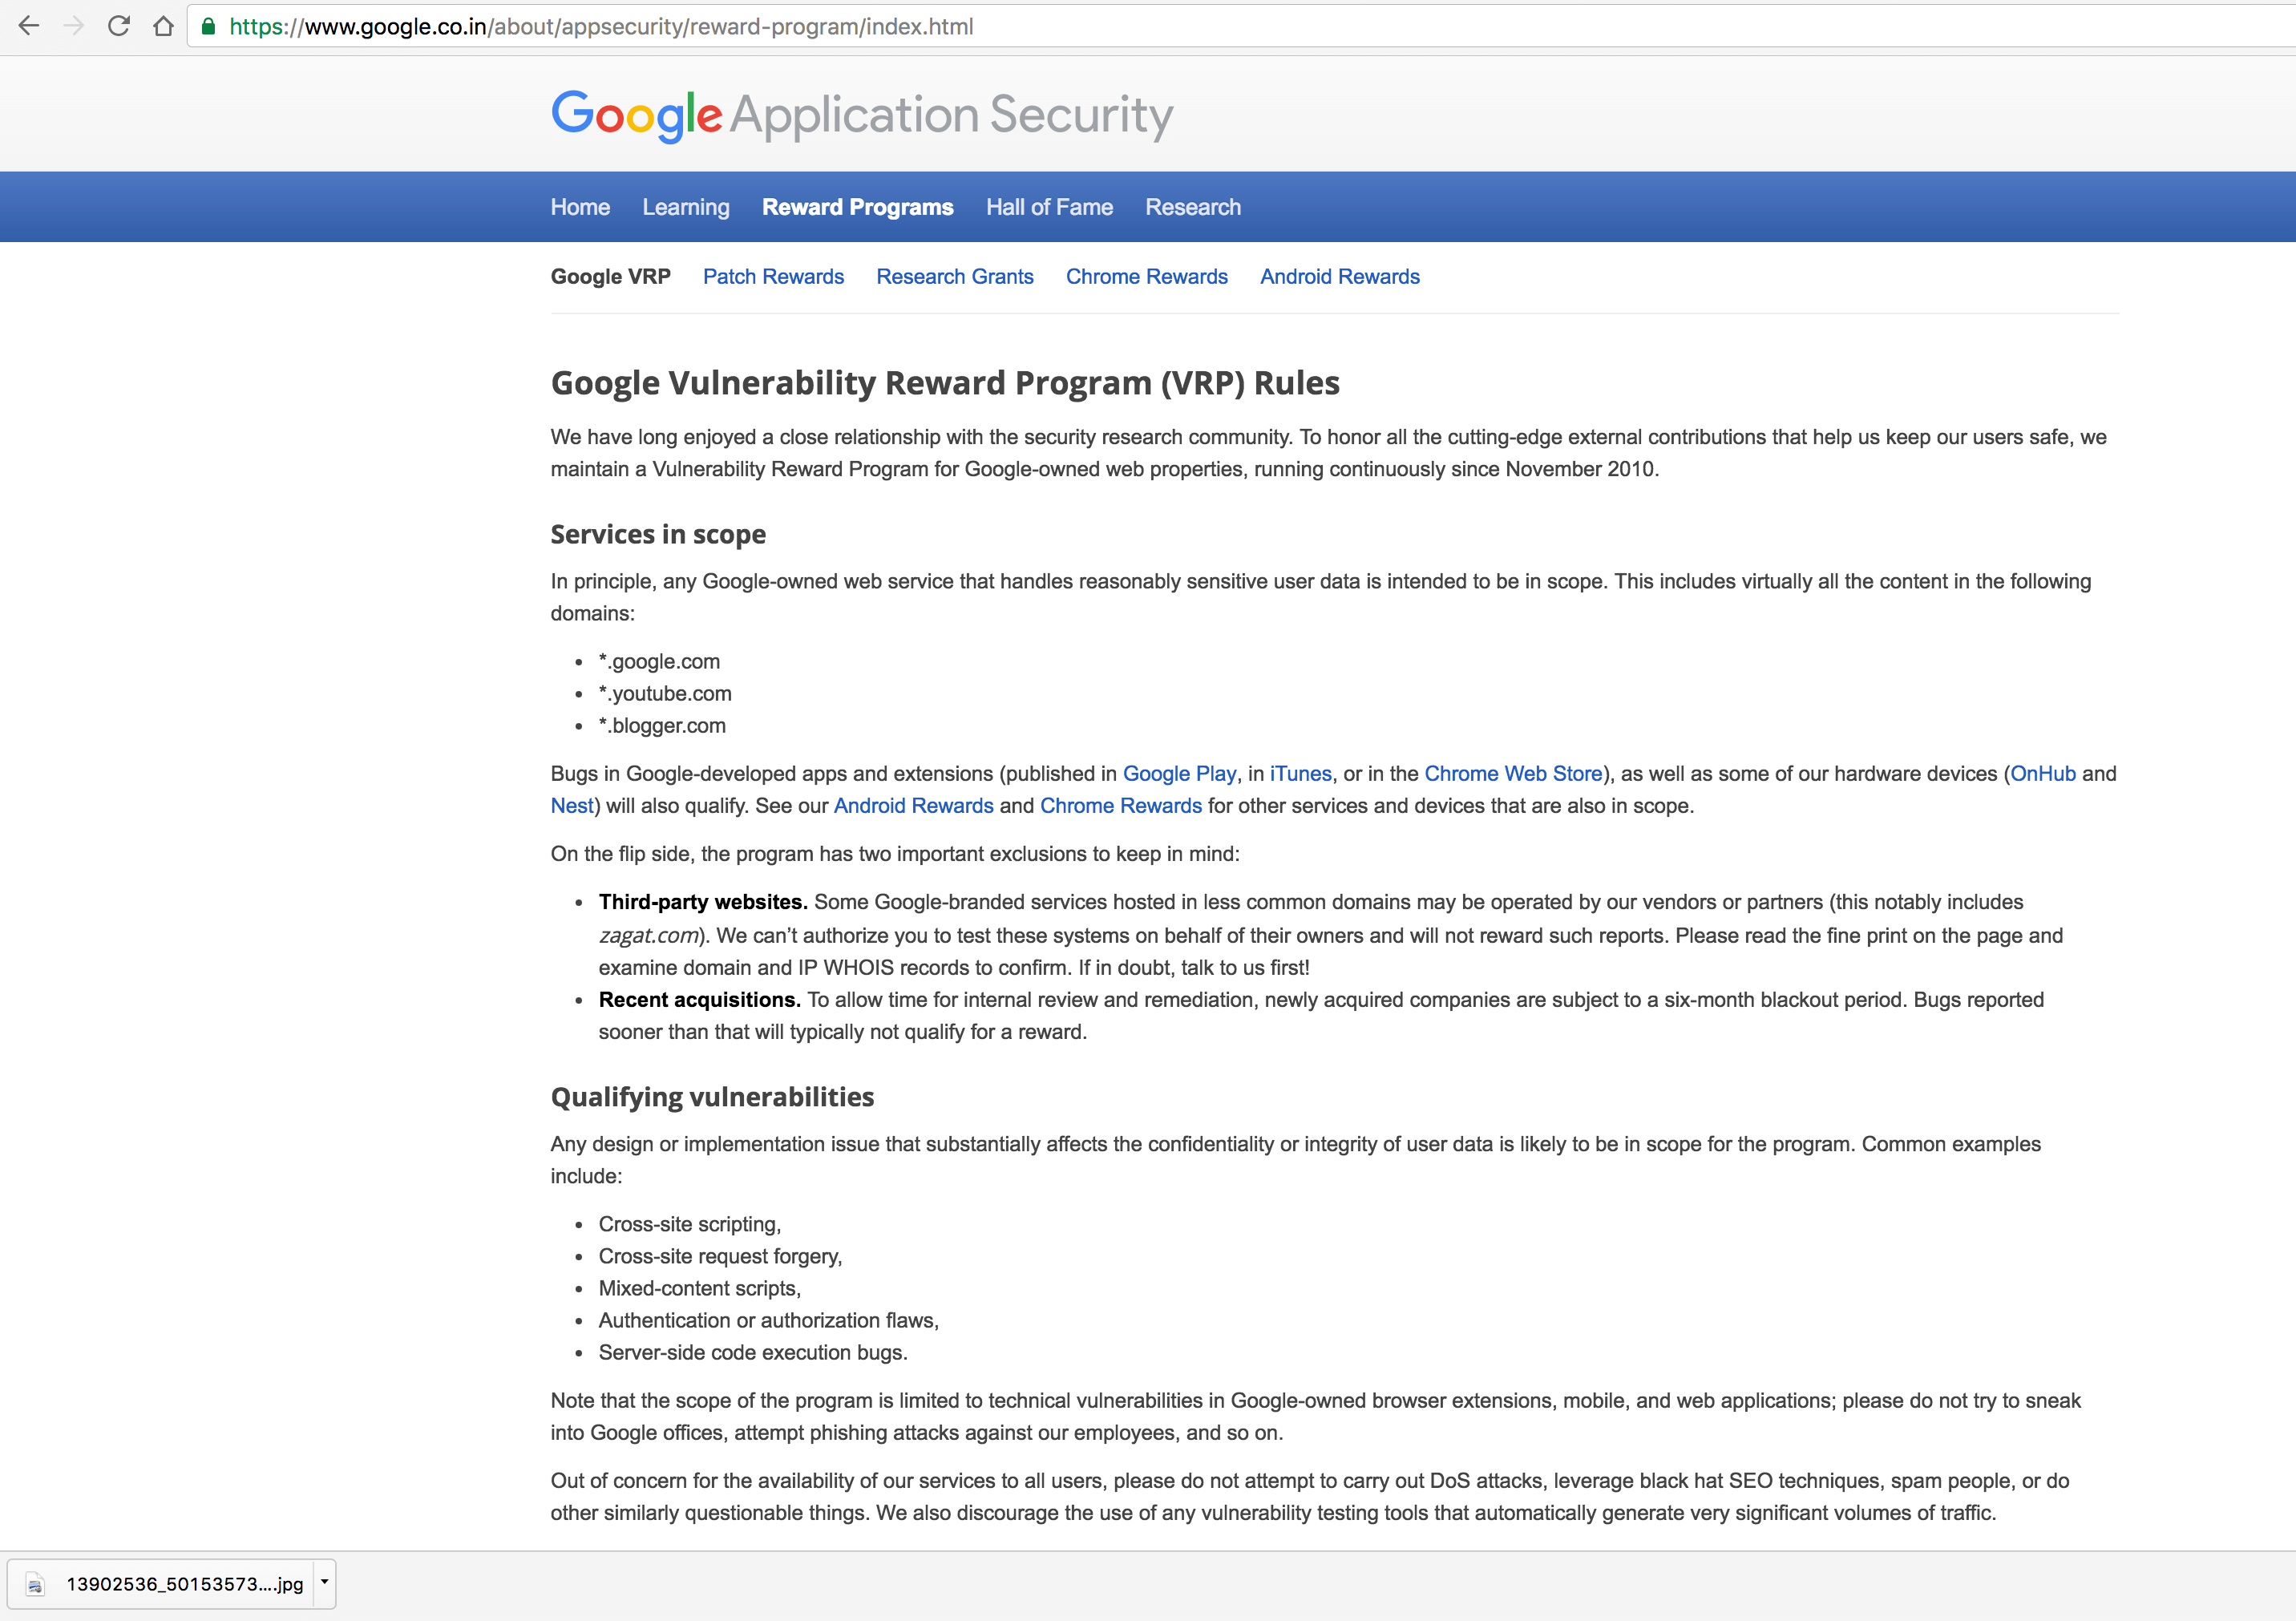 Google Application Security and Bug Bounty Program